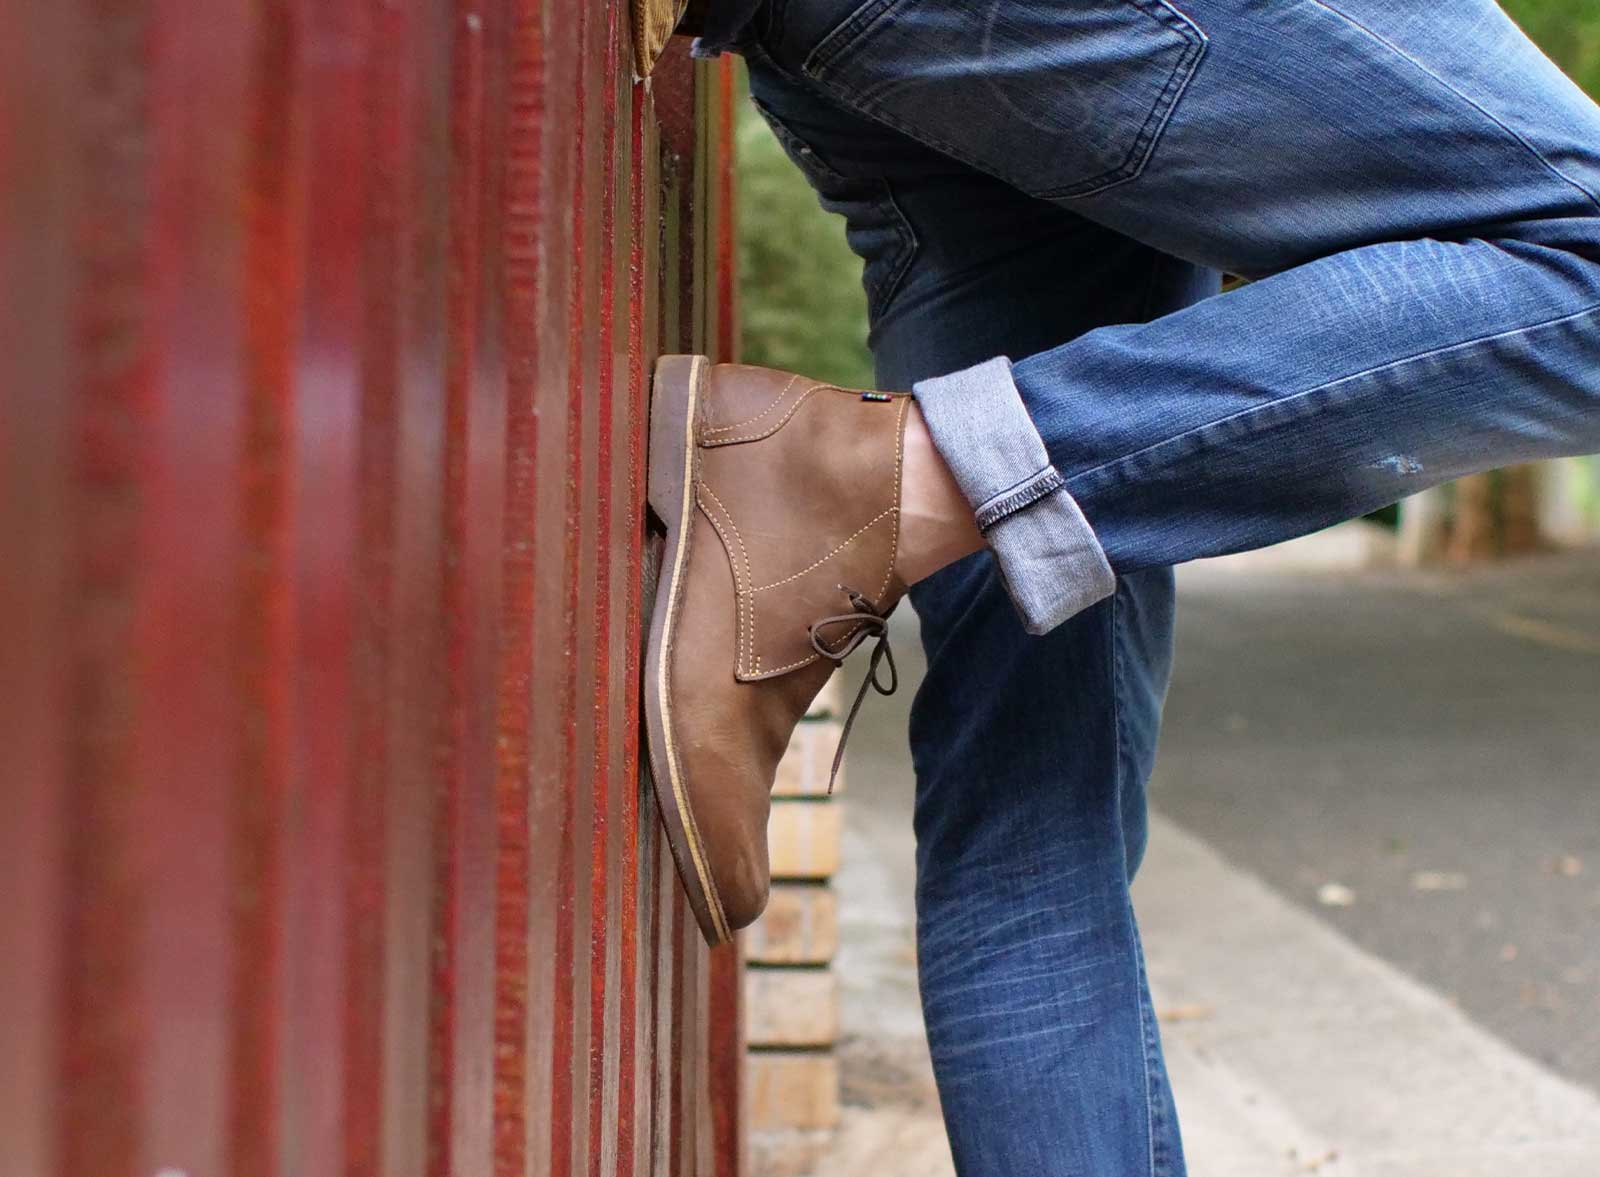 Chukka original shoe Veldskoen shoes ethically handcrafted genuine leather boots and shoes from South Africa man in jeans standing against wall